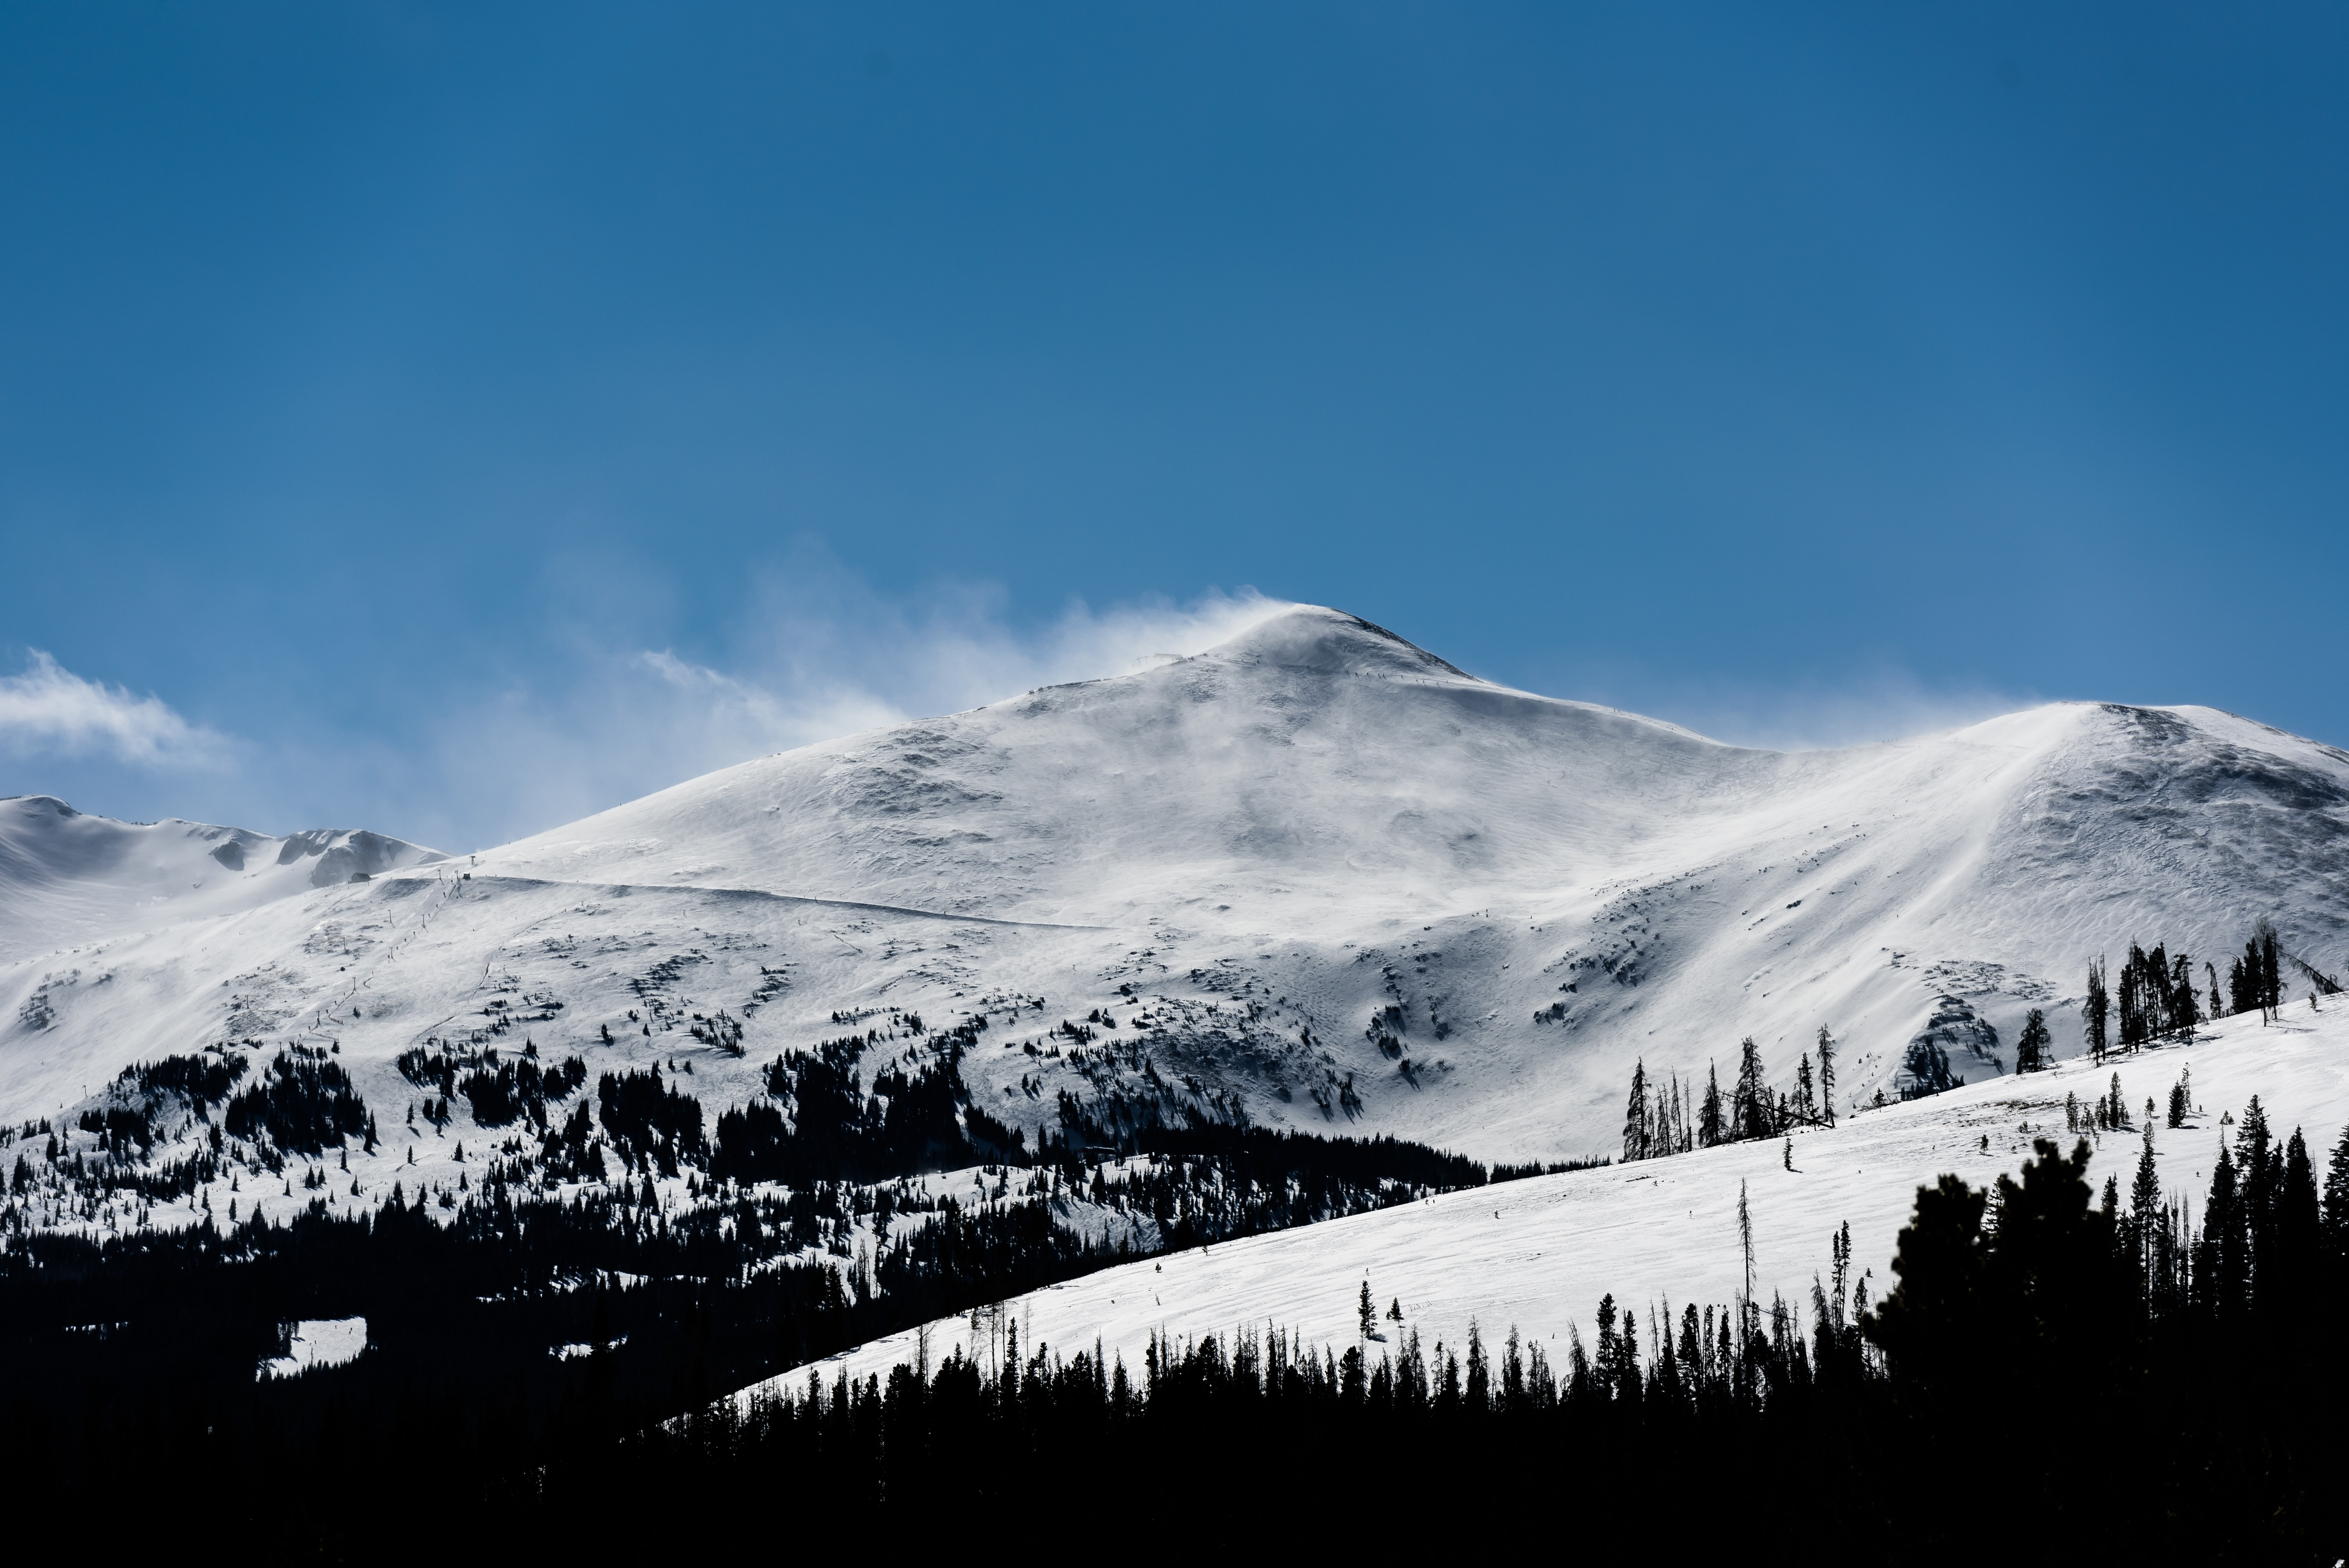 snow capped mountain under blue skies